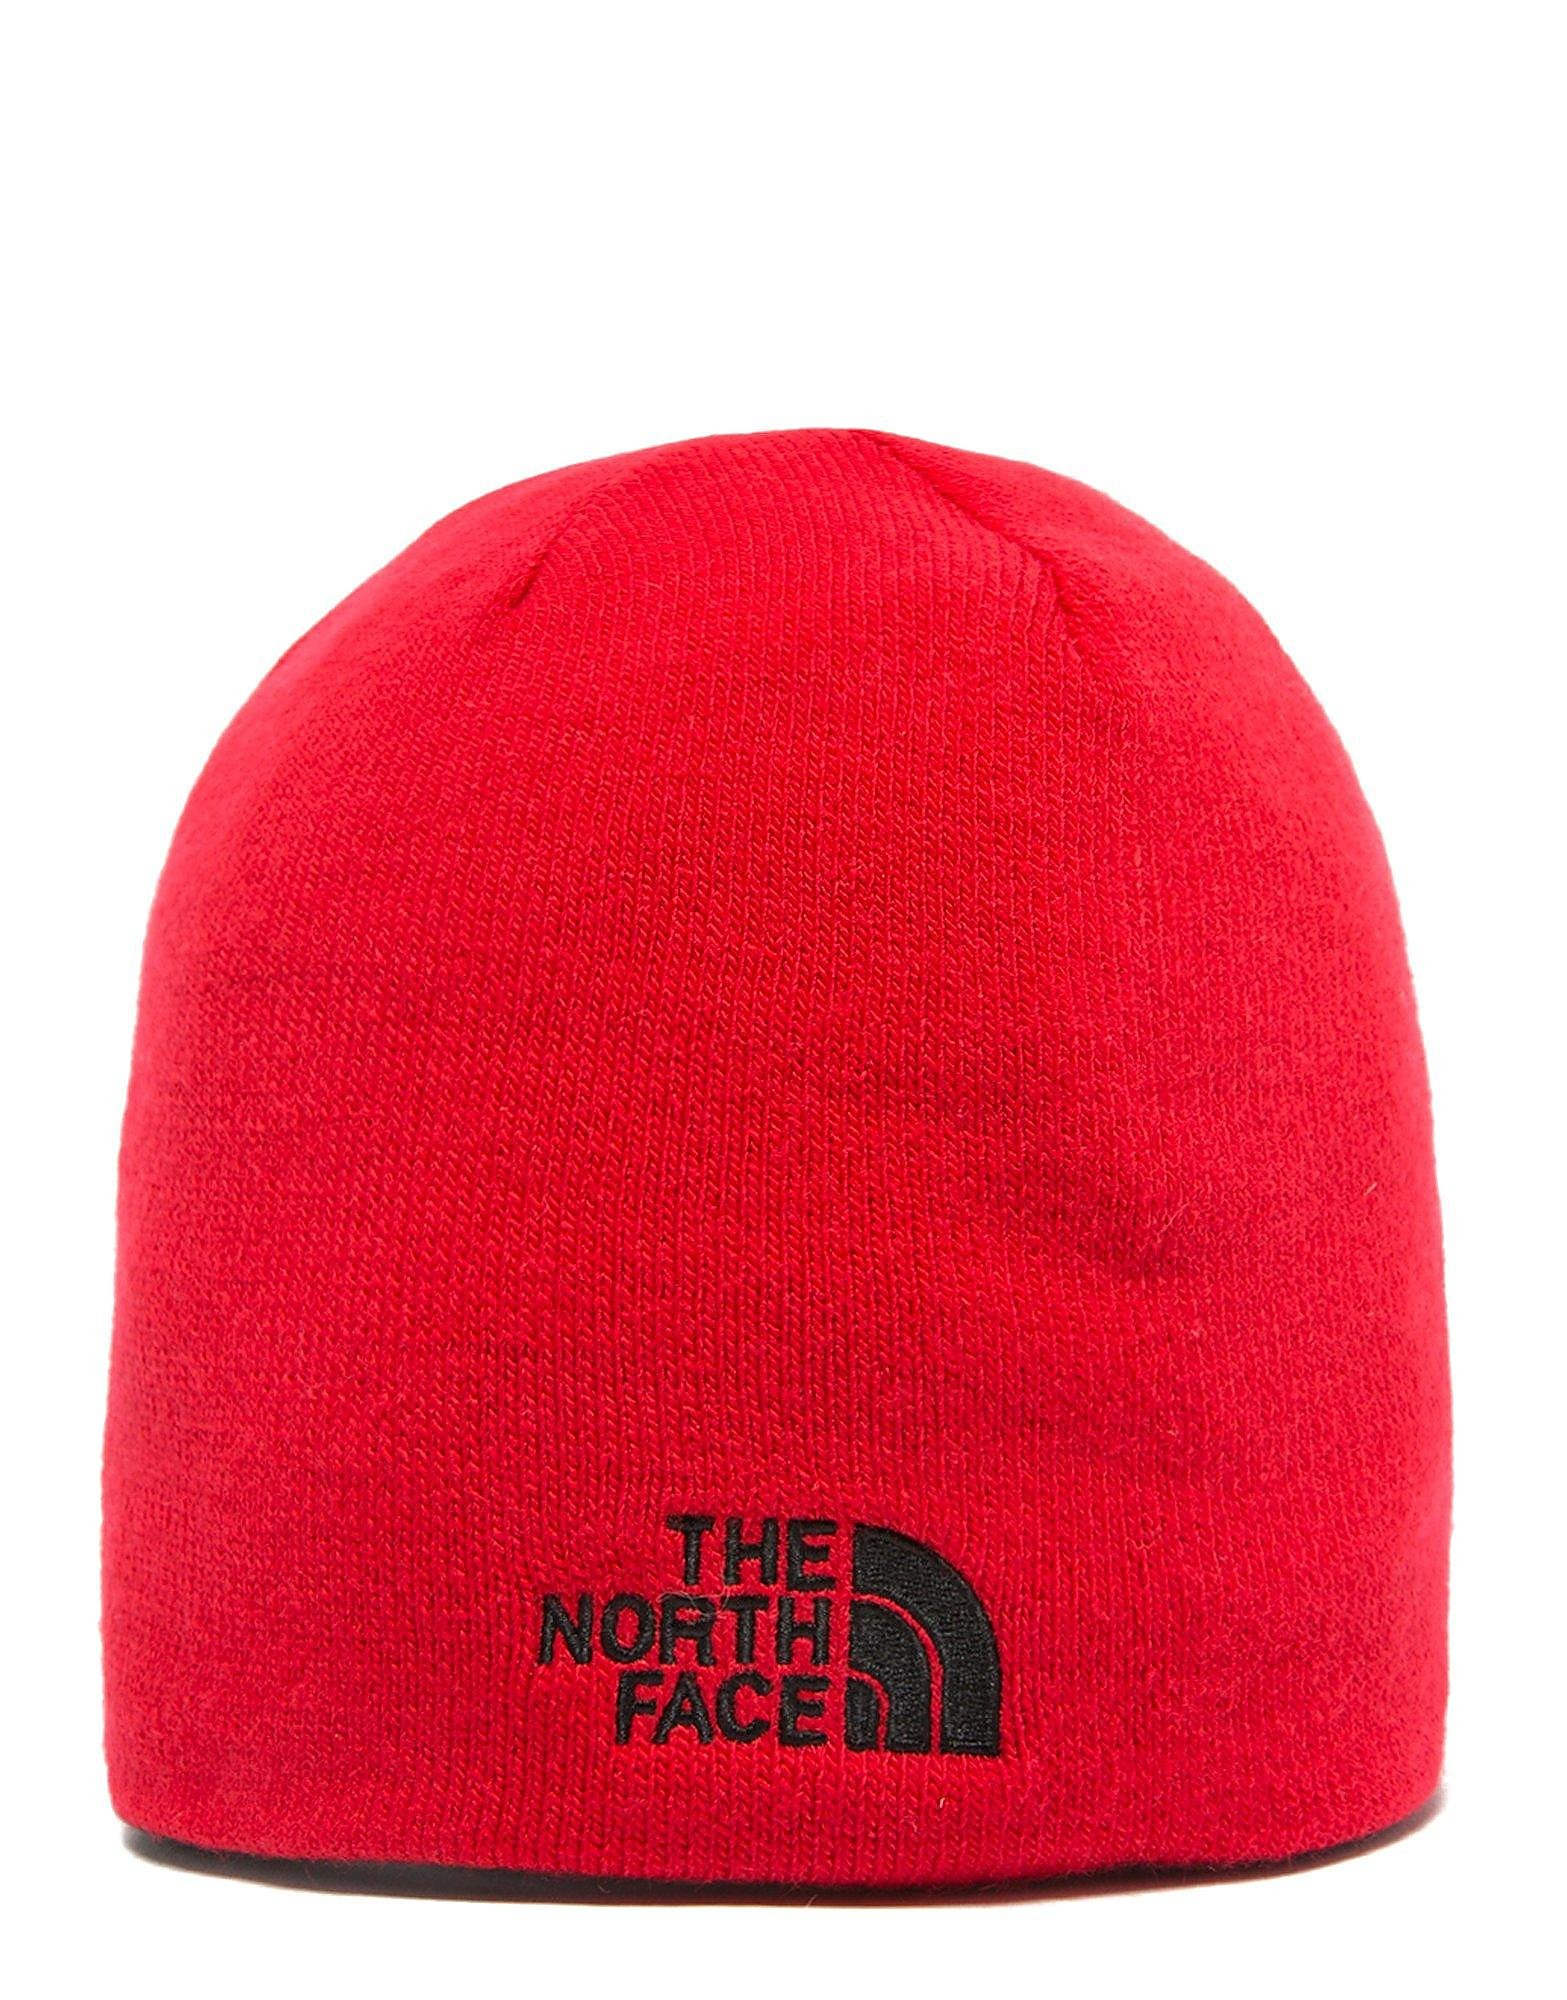 The North Face Omkeerbare muts